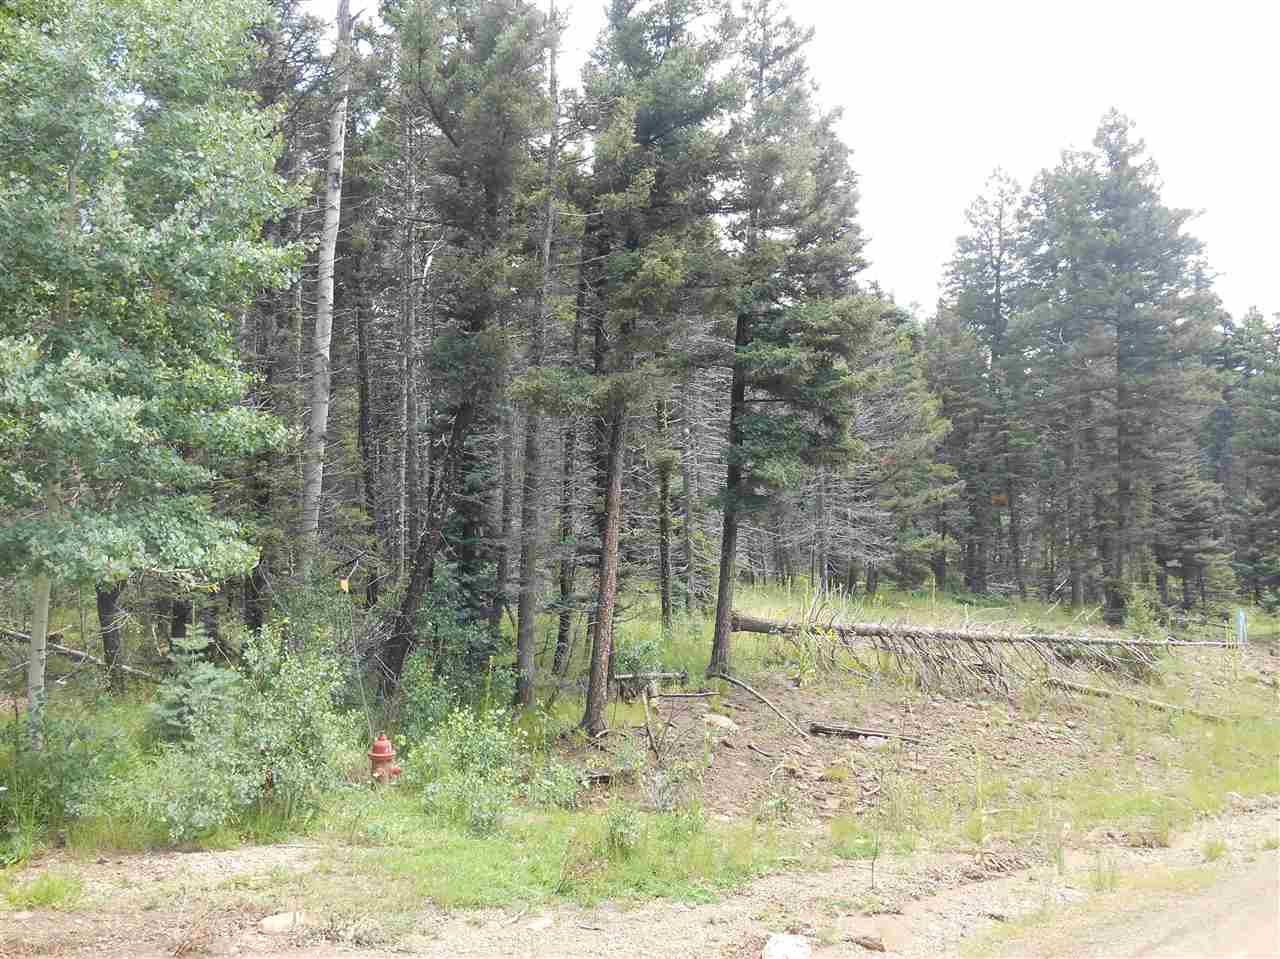 Nice buildable lot on corner of Royal and Vista Del Sur.  Gentle slope, heavily wooded.  Access up and down the mountain good.  Private, quiet location.  Lot backs up to greenbelt and greenbelt is also on opposite side of Royal, directly across from lot.